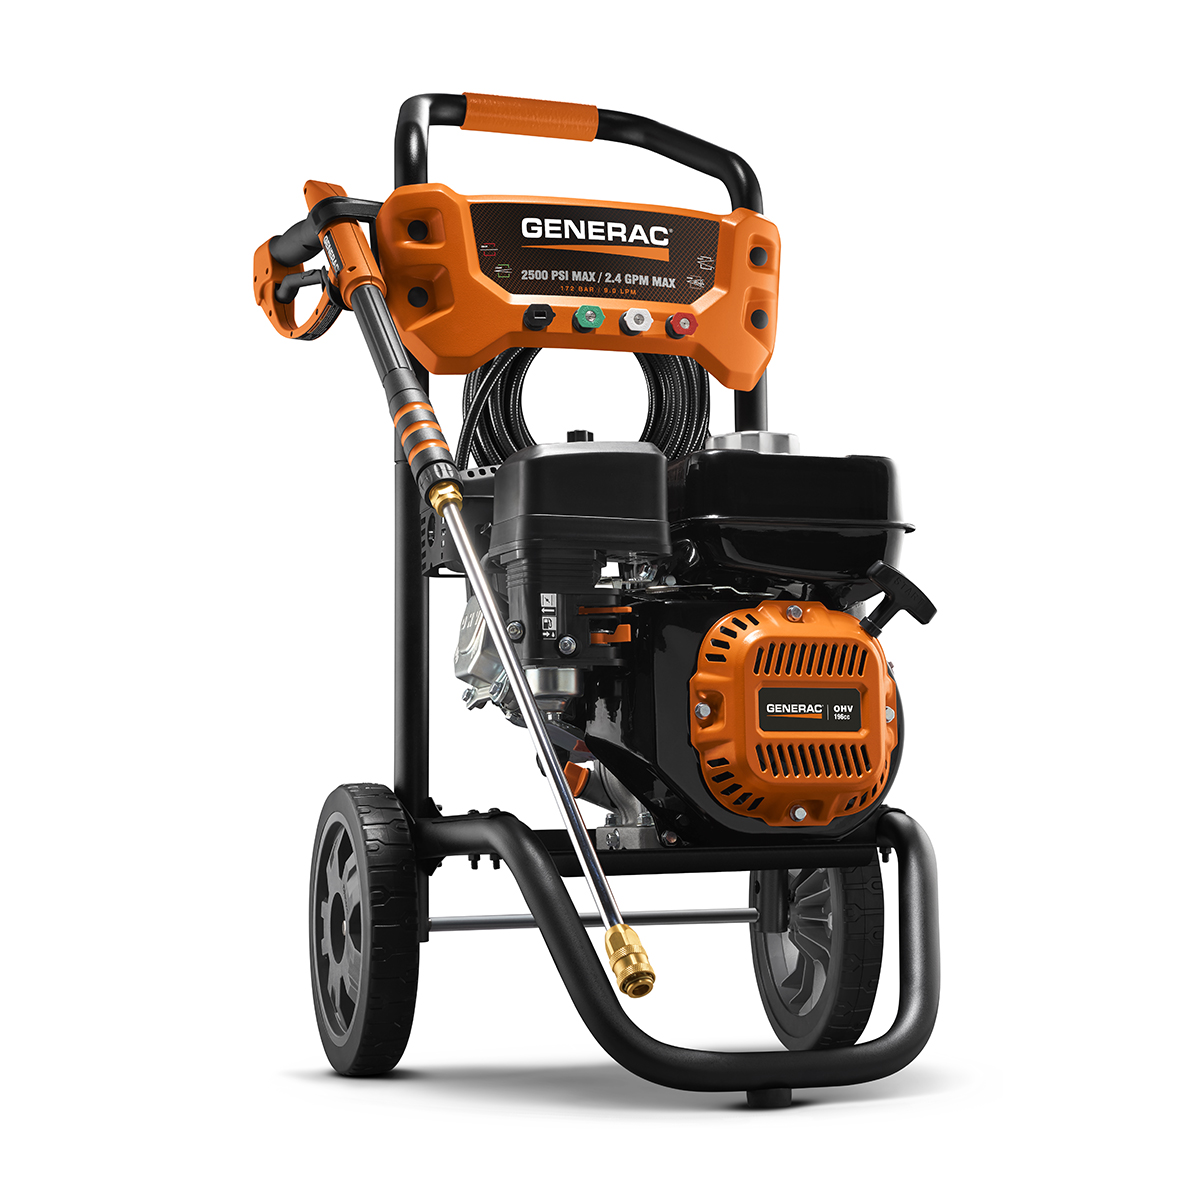 6921- Generac 2500 PSI 2.4 GPM Pressure Washer (50 State CSA) by Generac Power Systems